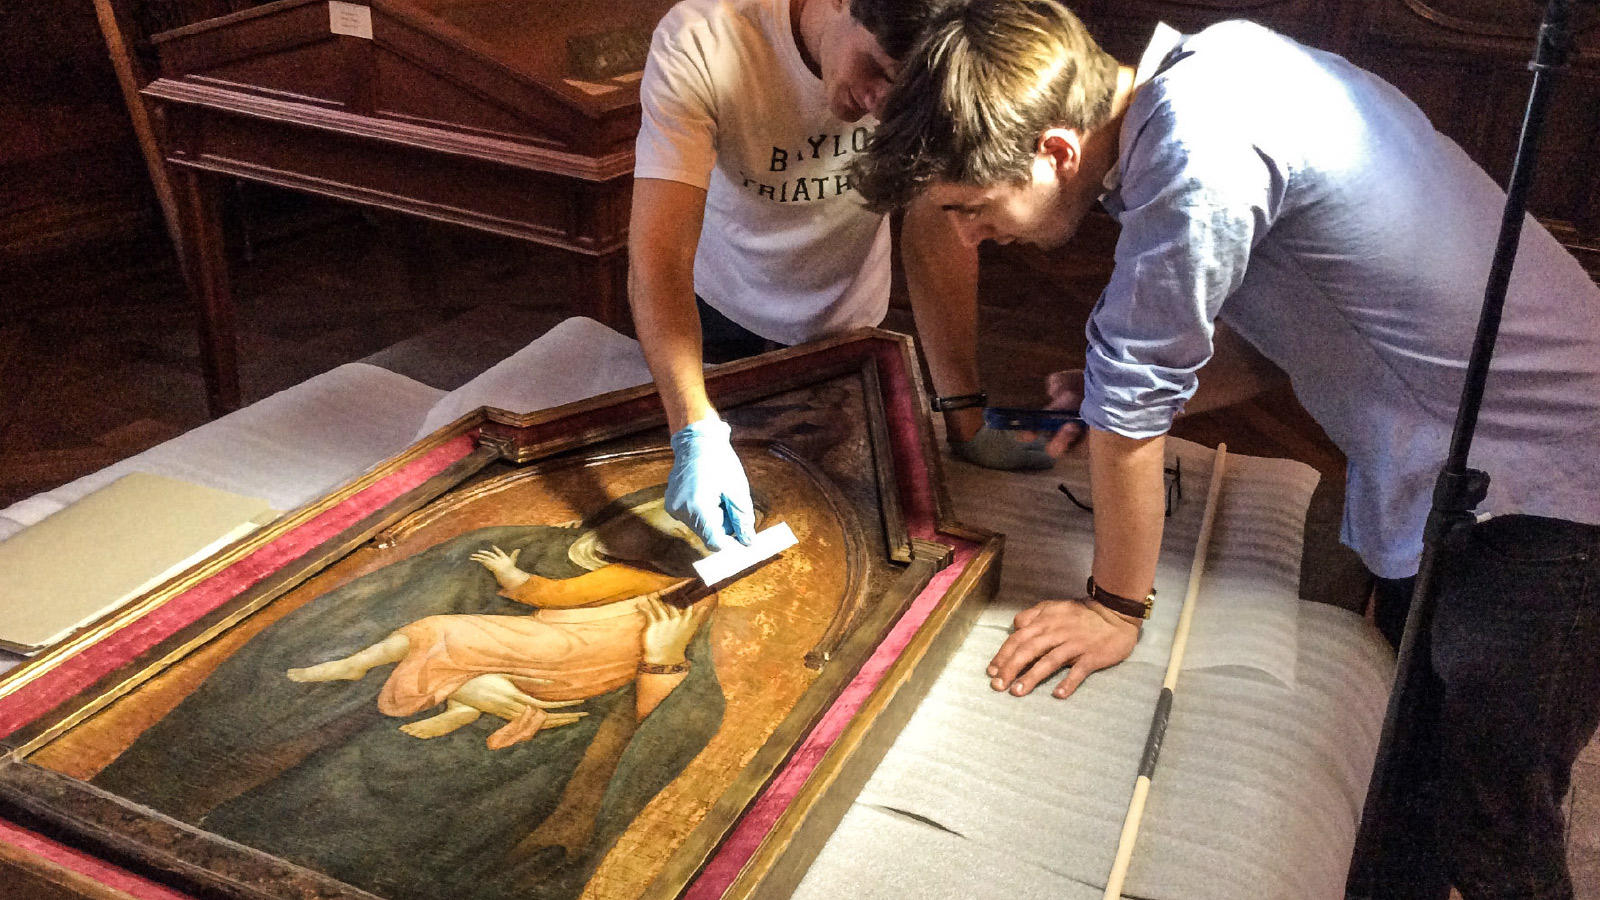 Two University Scholars (Nathan Eberlein, BA '17 and Conner Moncrief, BA '16) in Dr. Hornik's class on Connoisseurship examine a 14th-century Maddona and Child painted by a follower of the Sienese artist Pietro Lorenzetti in the Armstrong Browning Library Collection. The Connoisseurship class was held in the Armstrong Browning Library in from of the 15 original works of art from 1330-1750. The Maddona and Child here is removed from the wall to investigate not only the condition of the work (i.e. insect presence, paint deterioratoin) but also to measure the punch marks in the Virgin's gold-leaf halo. The punch marks, are in effect, a type of signature for a particular painting workshop during this period and assist in formulating accurate attribution.